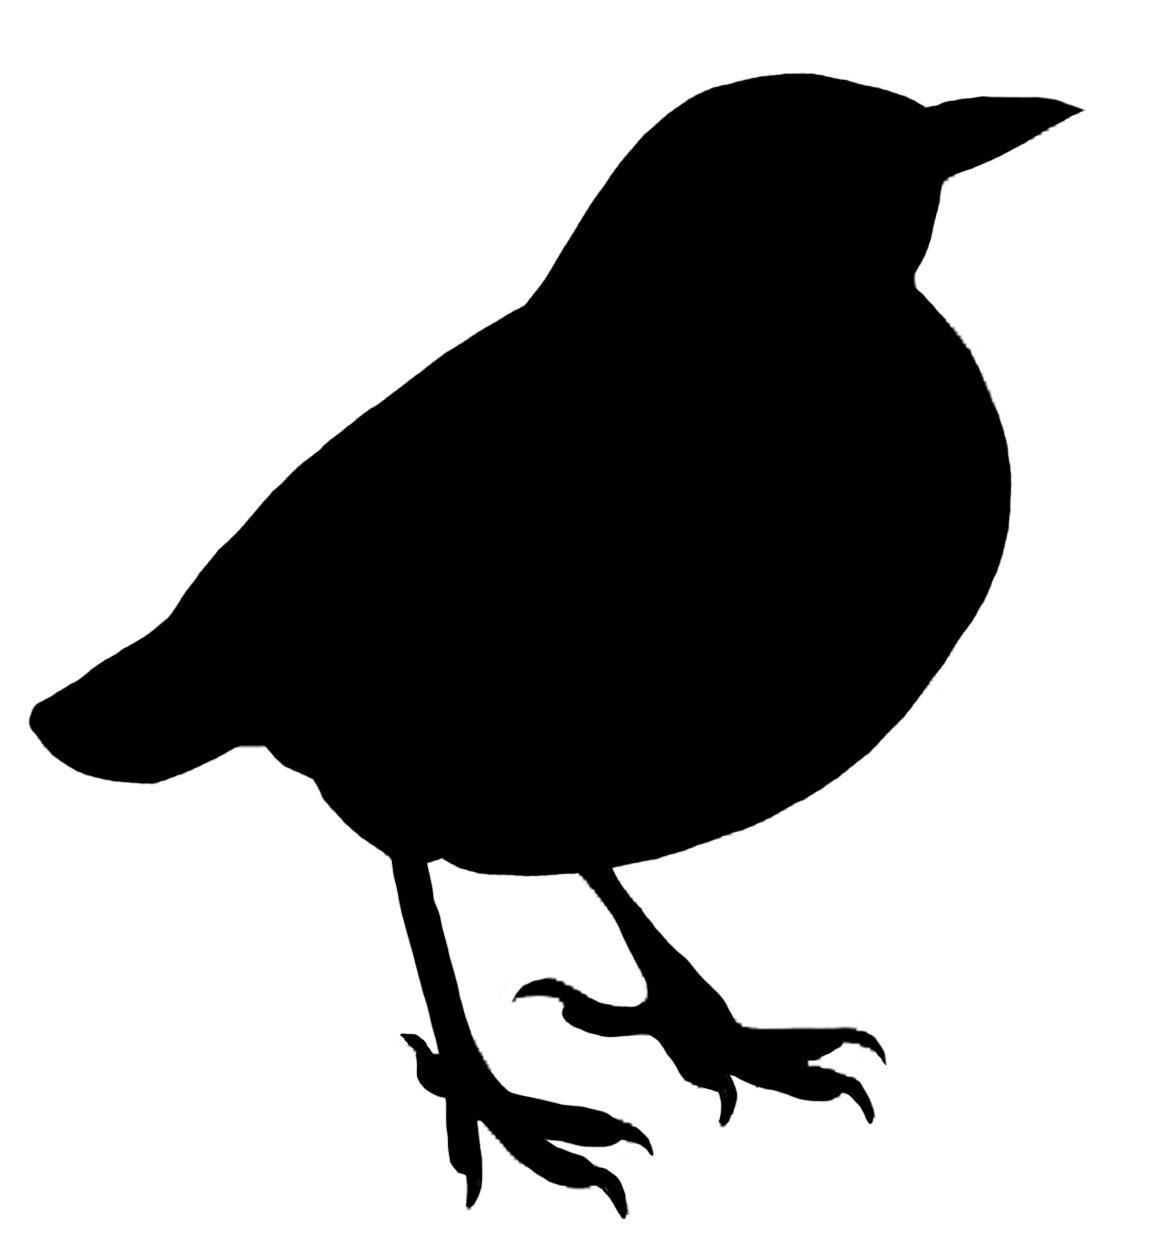 silhouette black of small standing bird PlusPng.com  - Bird Outline PNG HD